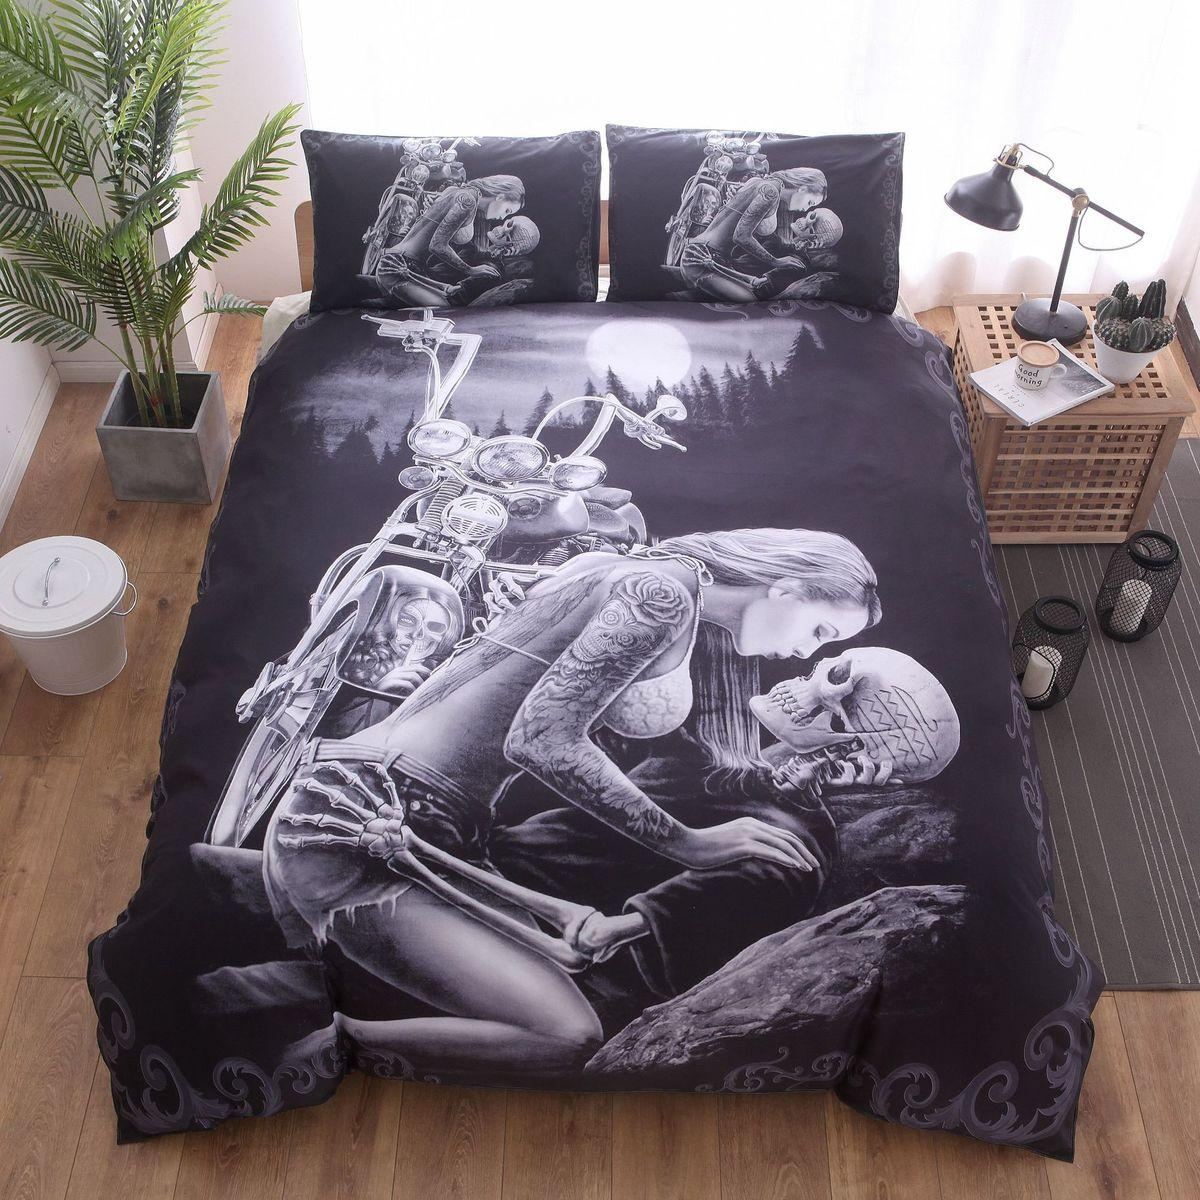 3D Skull Bedding Set Halloween Style Queen King Double Big Size Bed Linen Cotton Duvet Cover Adult Creative Quilt Comforter Case